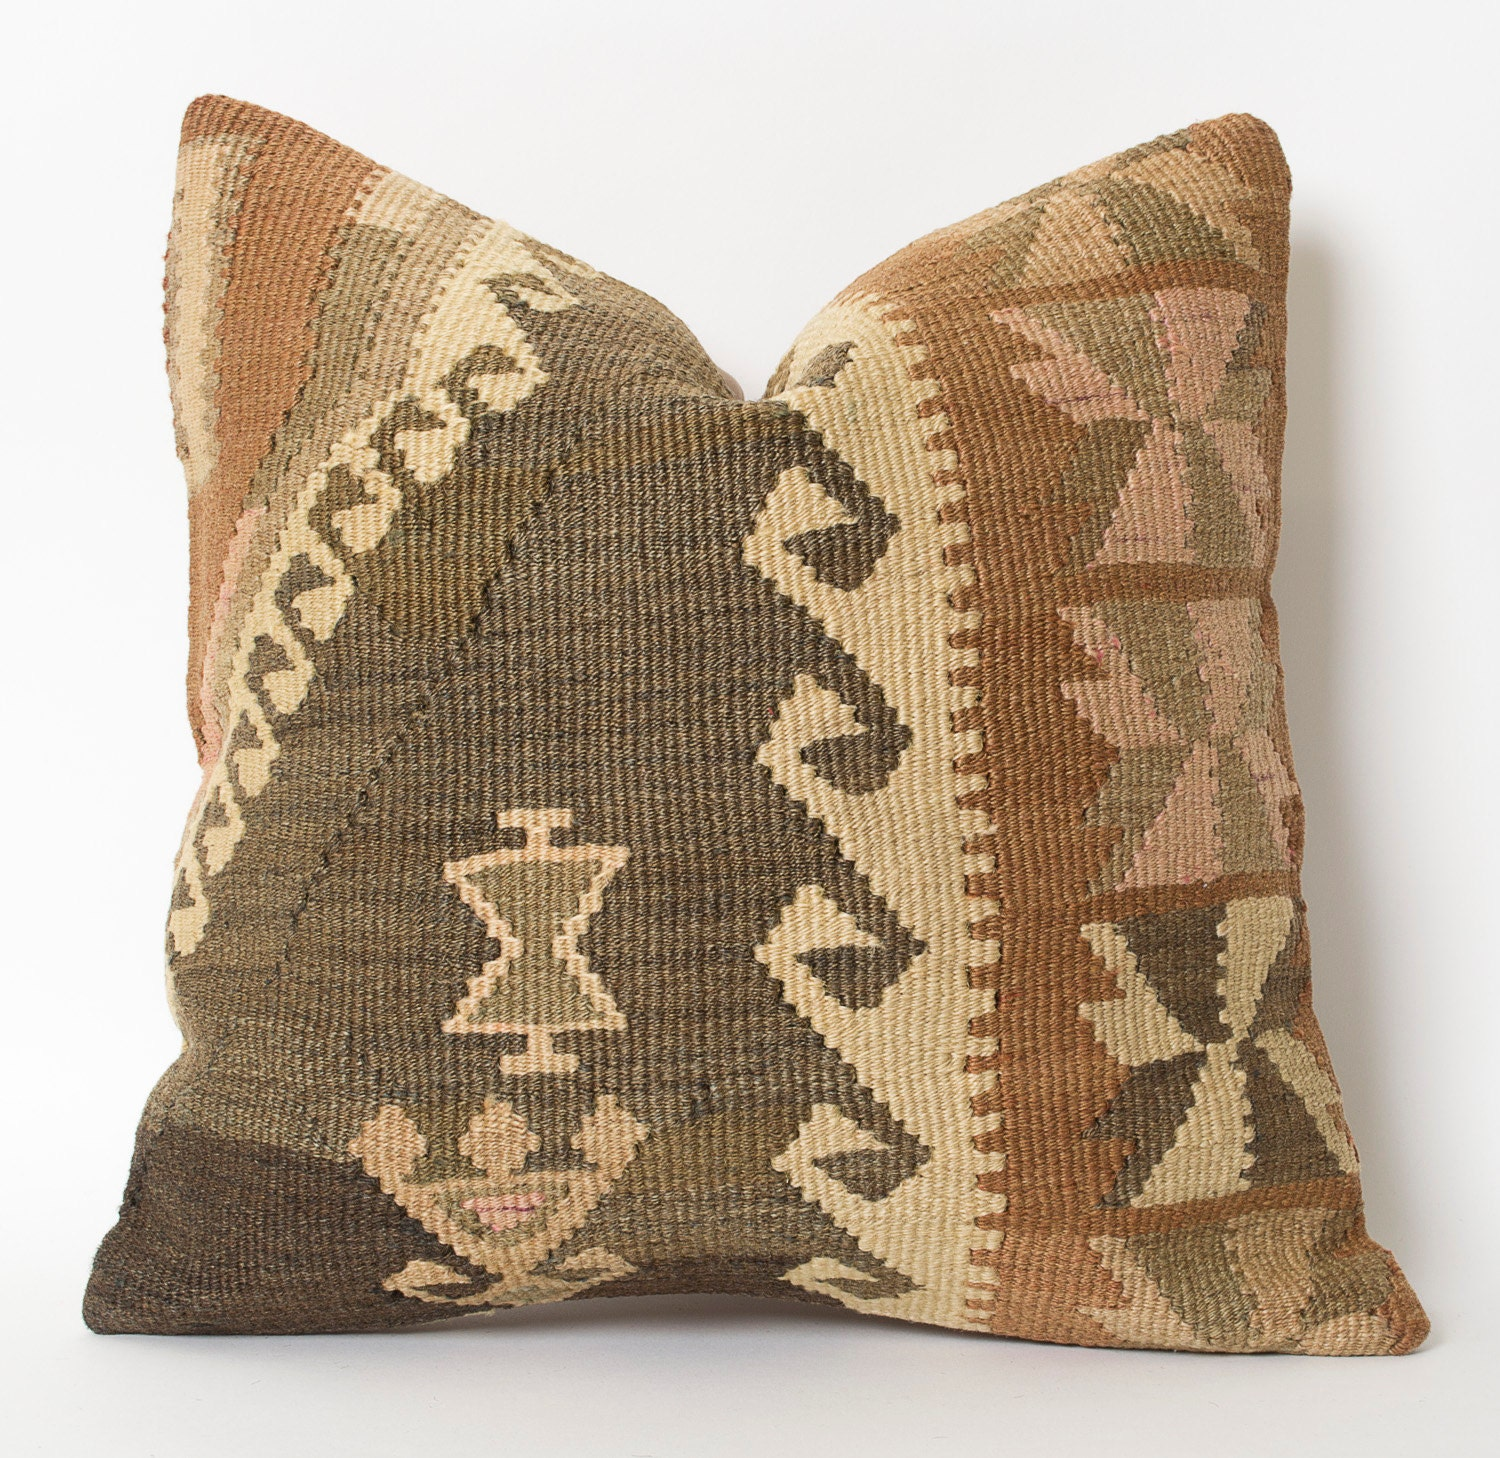 Decorative Pillows Kilim : Kilim Pillow Cover Patel Brown Decorative Kilim Pillows Wool